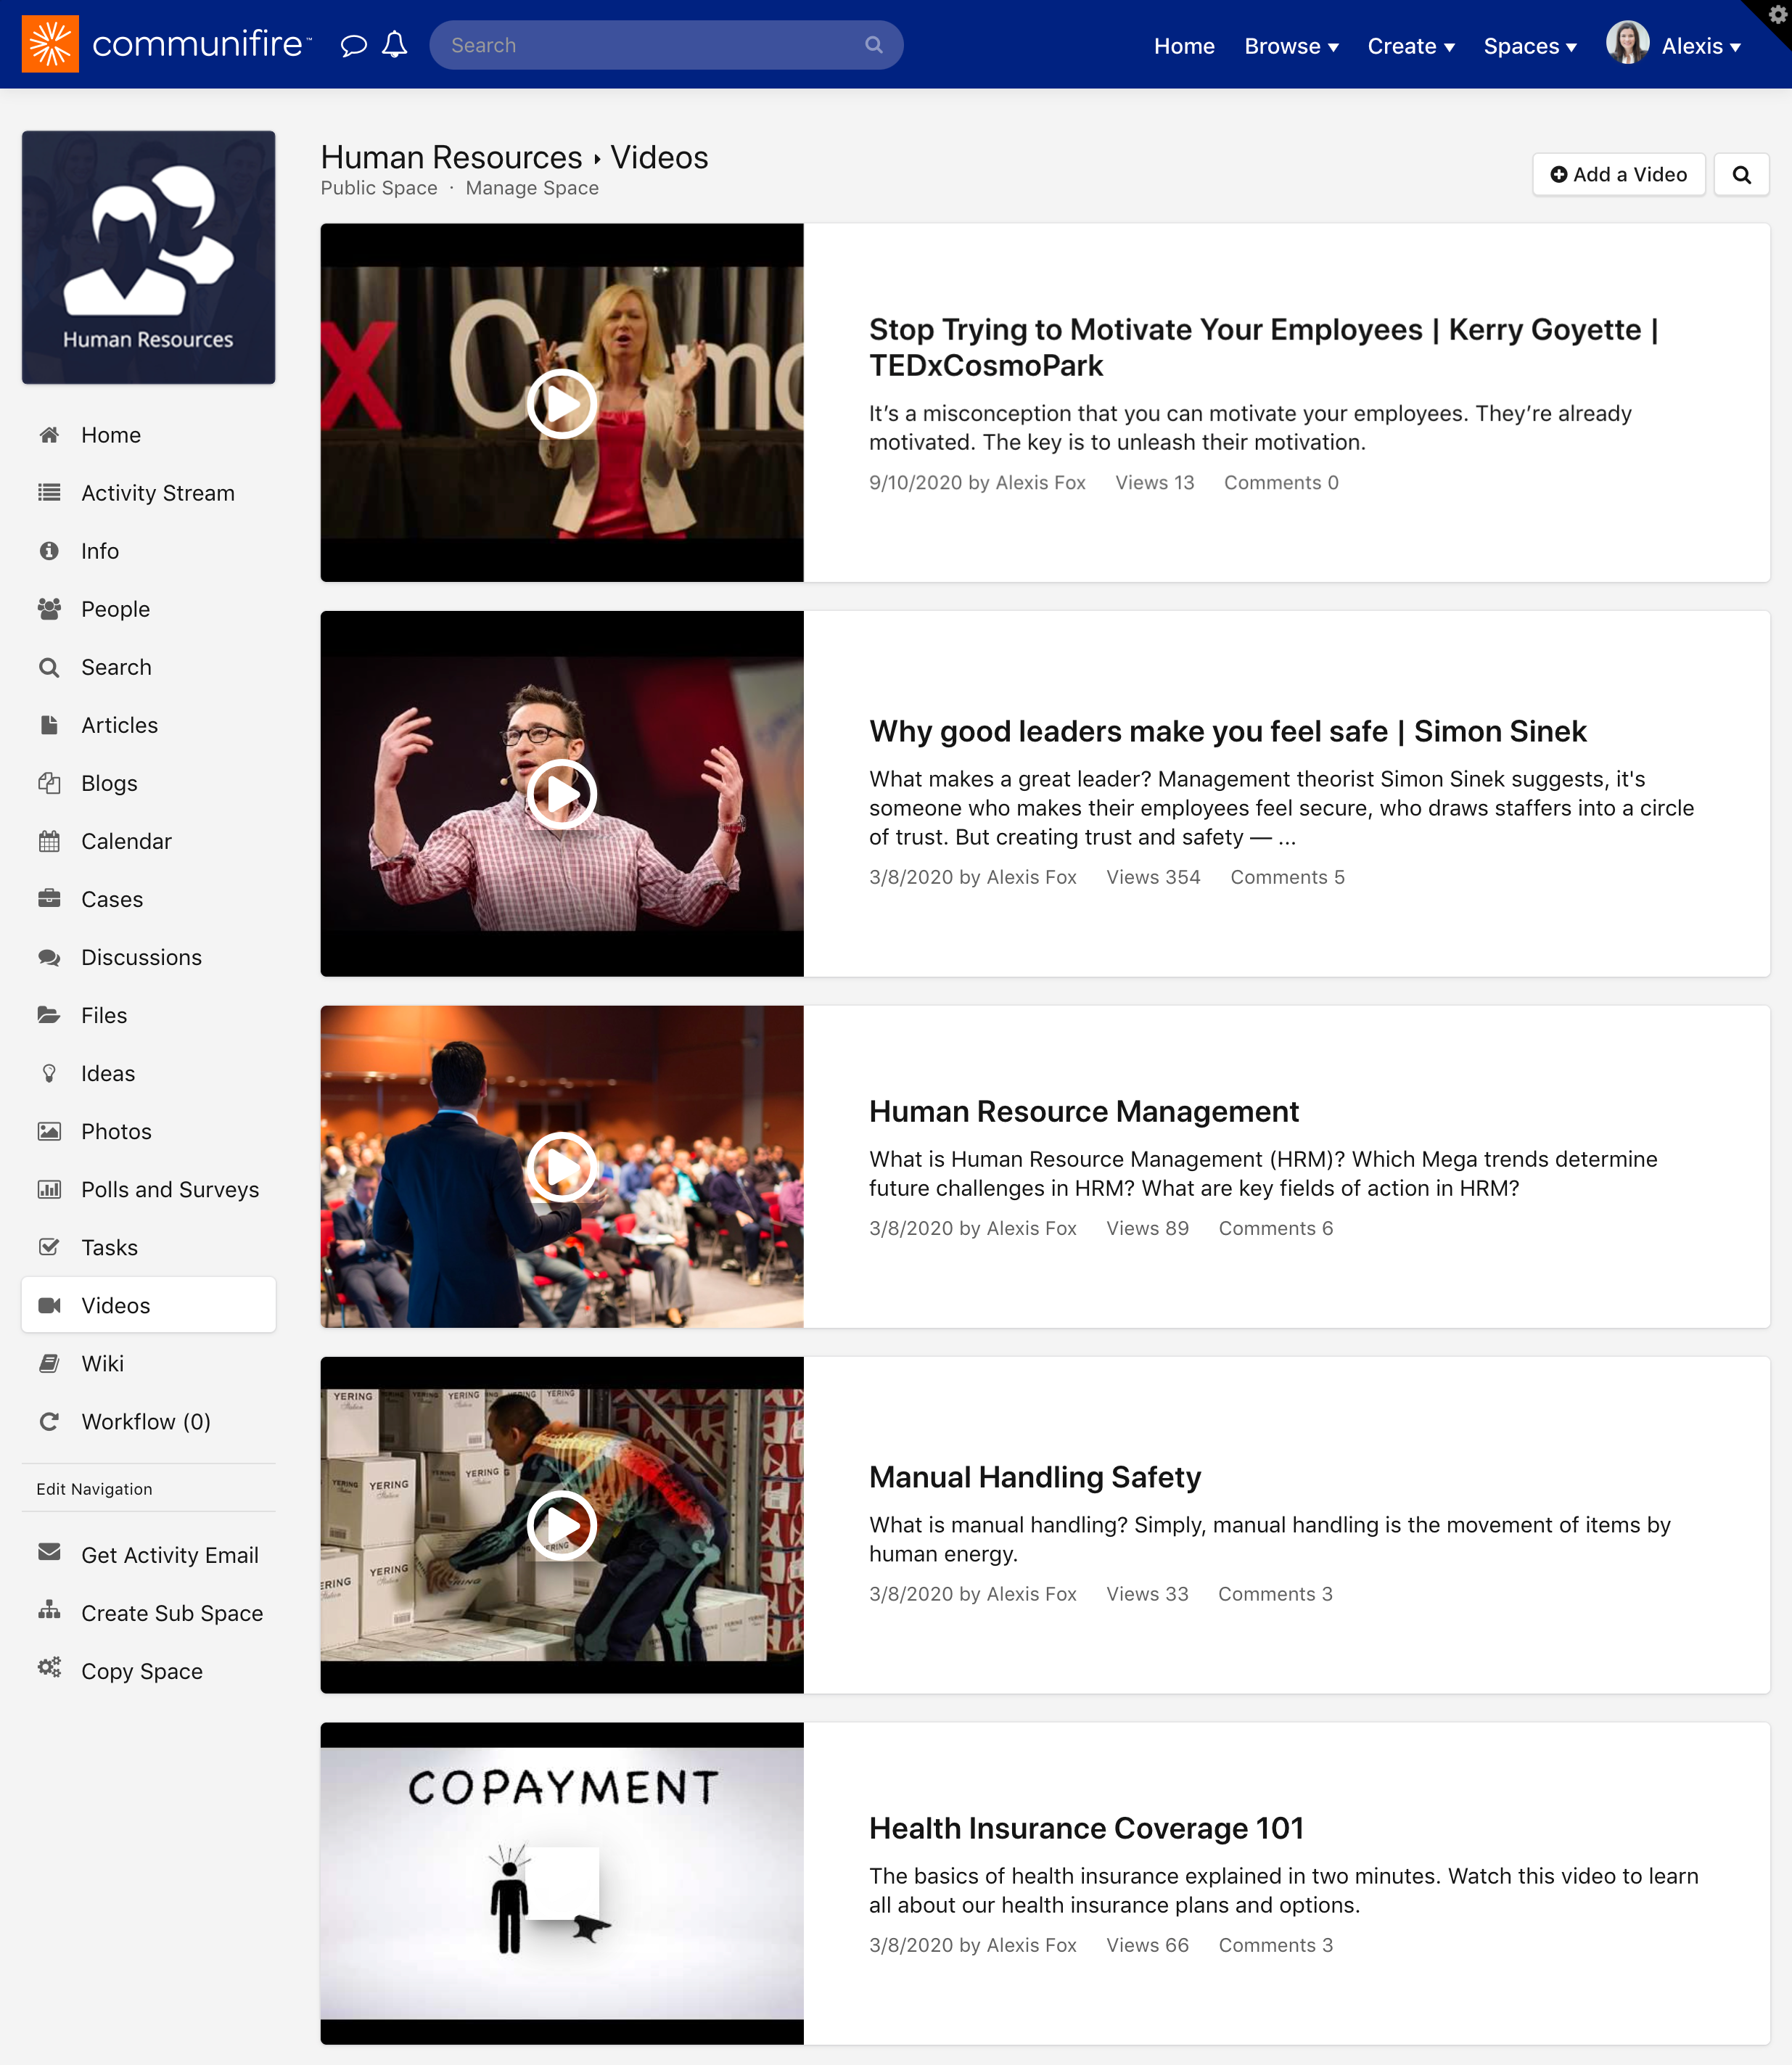 The videos homepage